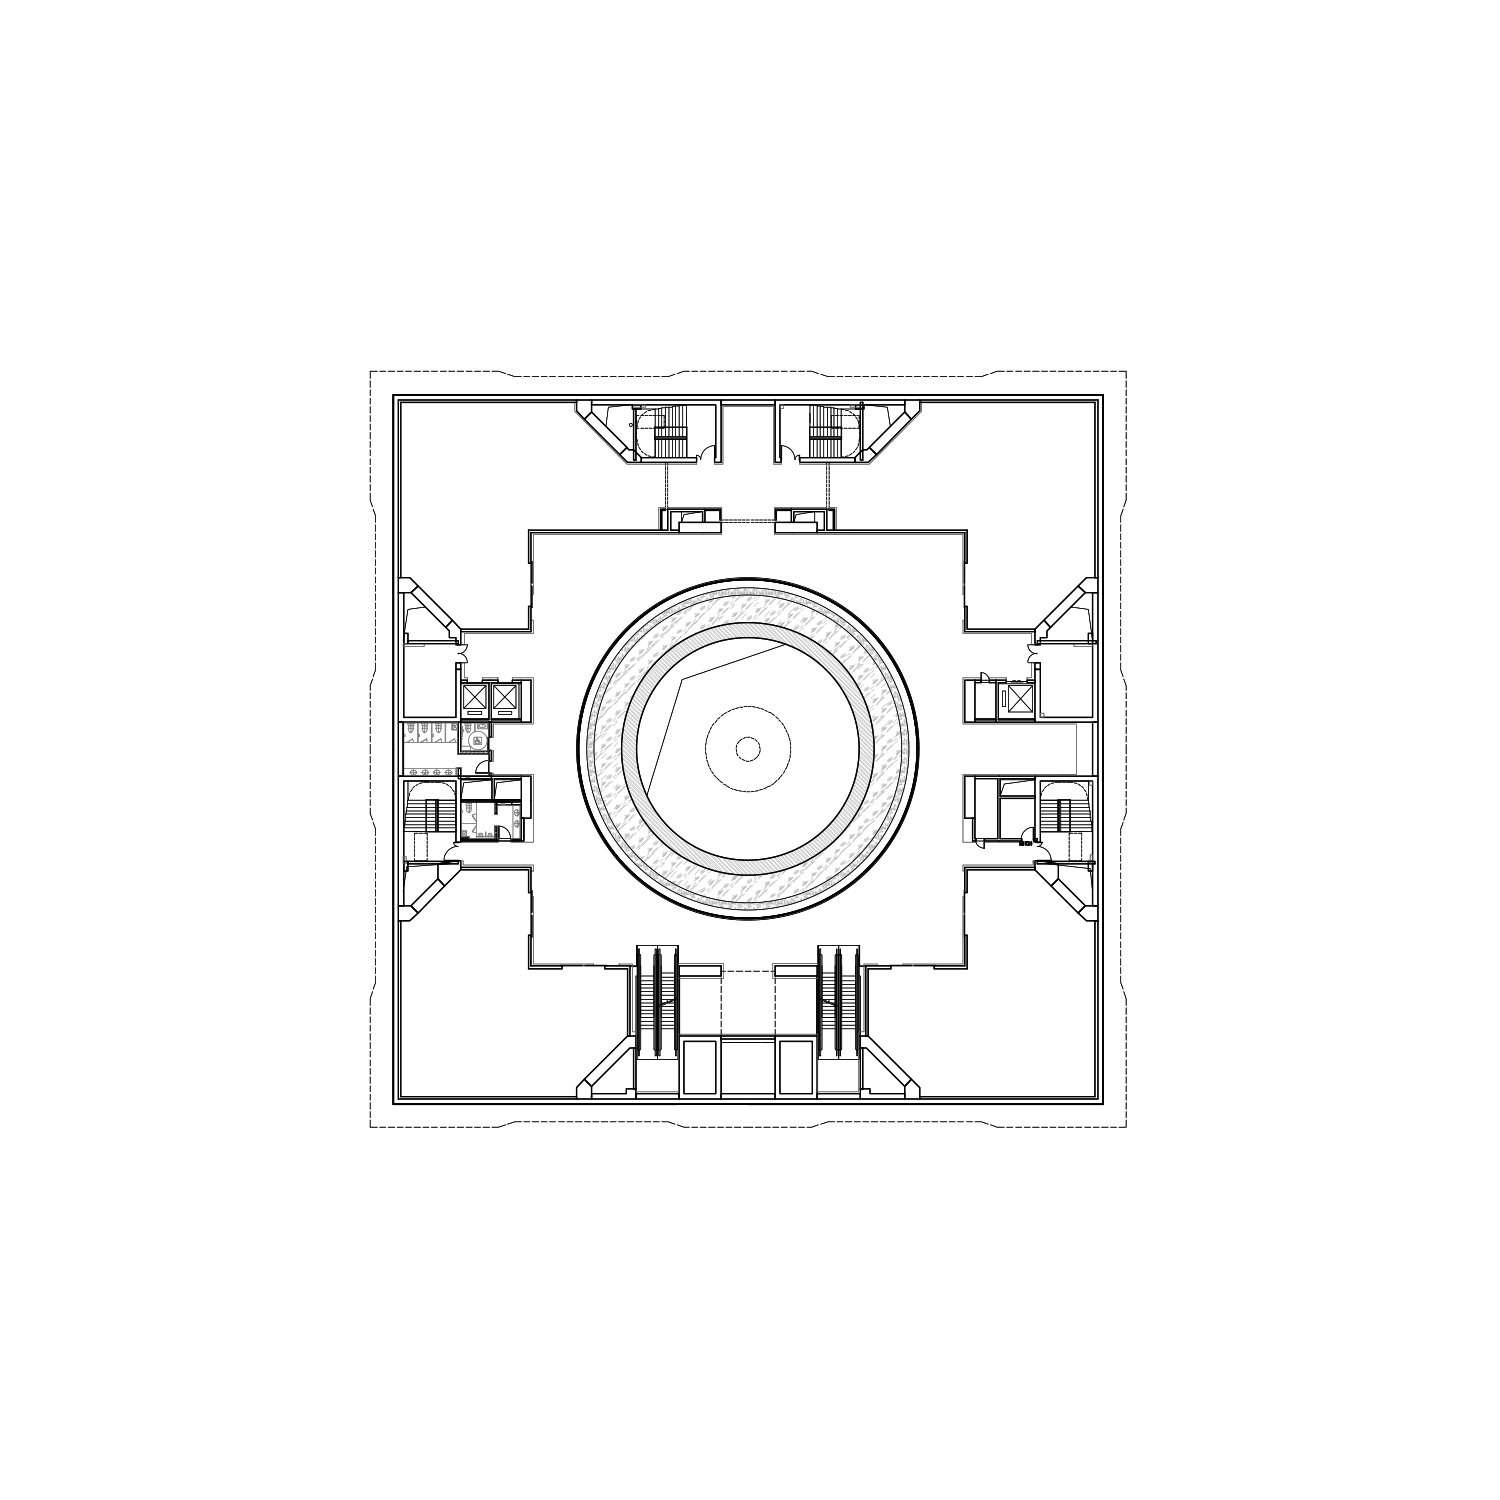 2nd Floor Plan The Architectural Design & Research Institute of Zhejiang University}